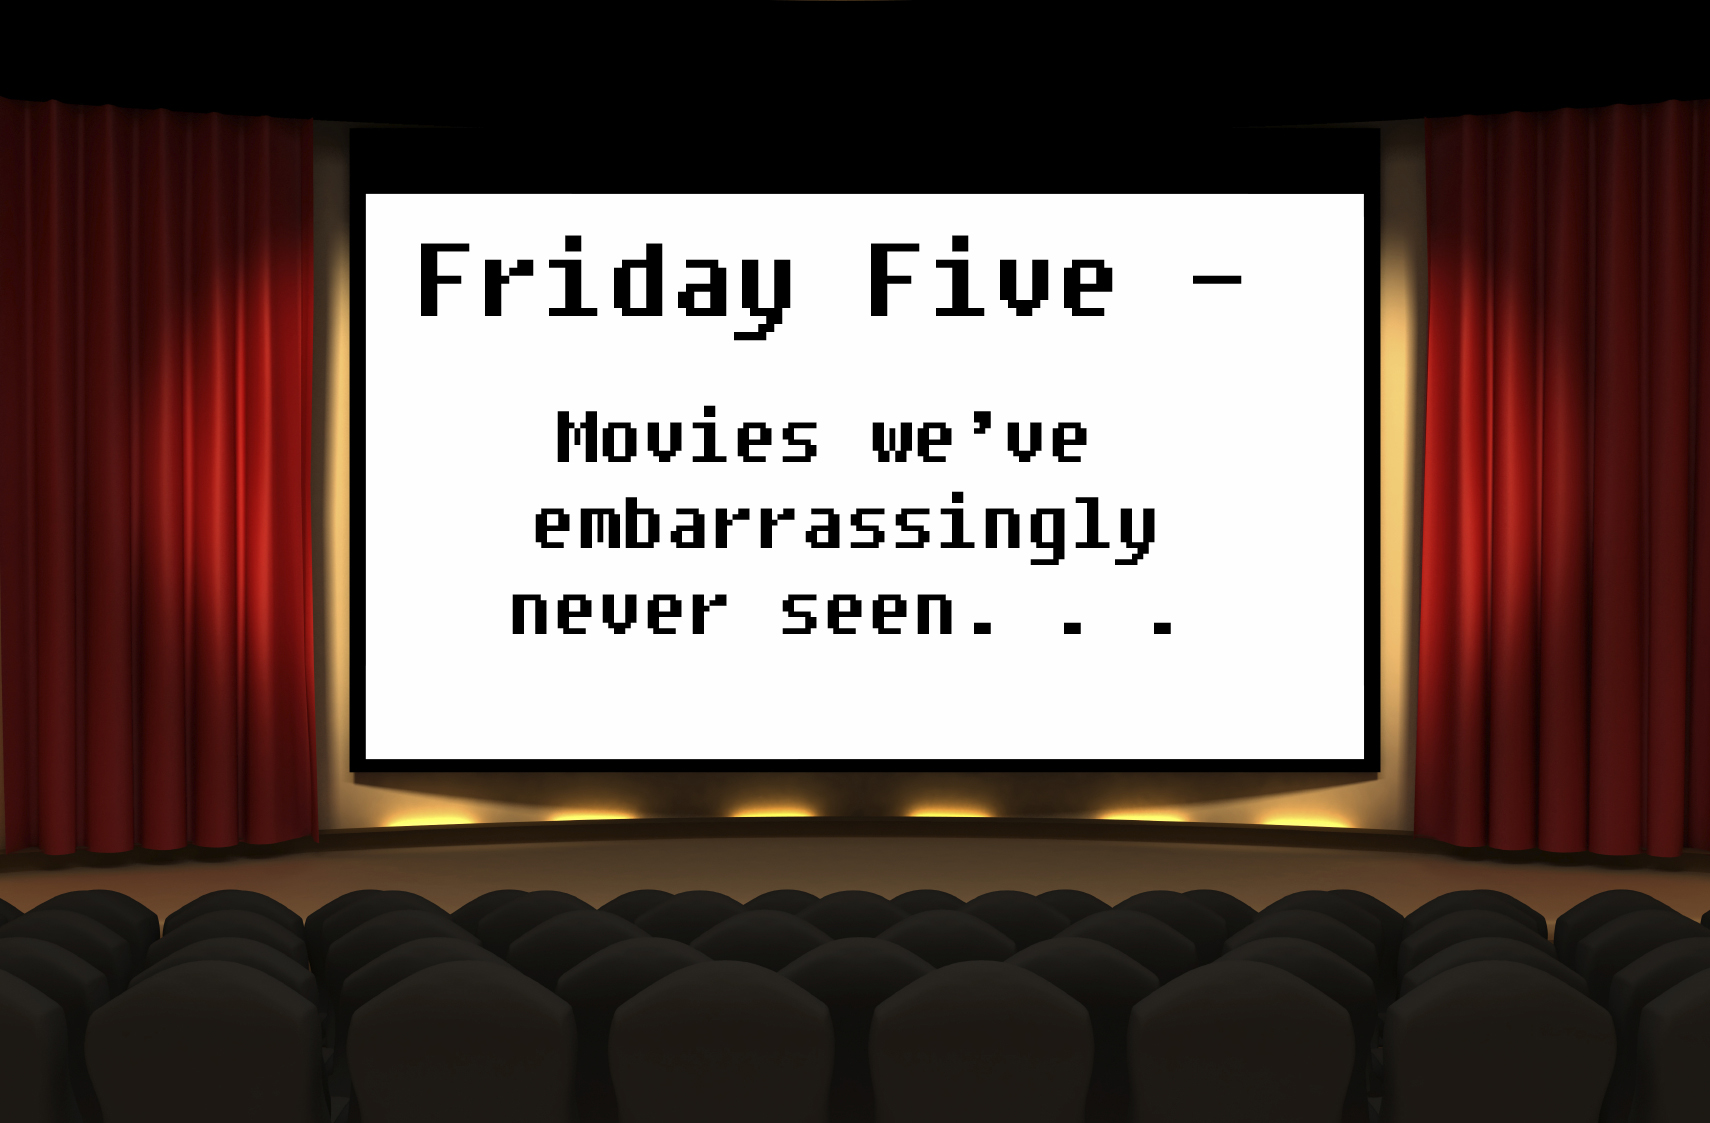 Friday Five - Movies we've embarrassingly never seen.